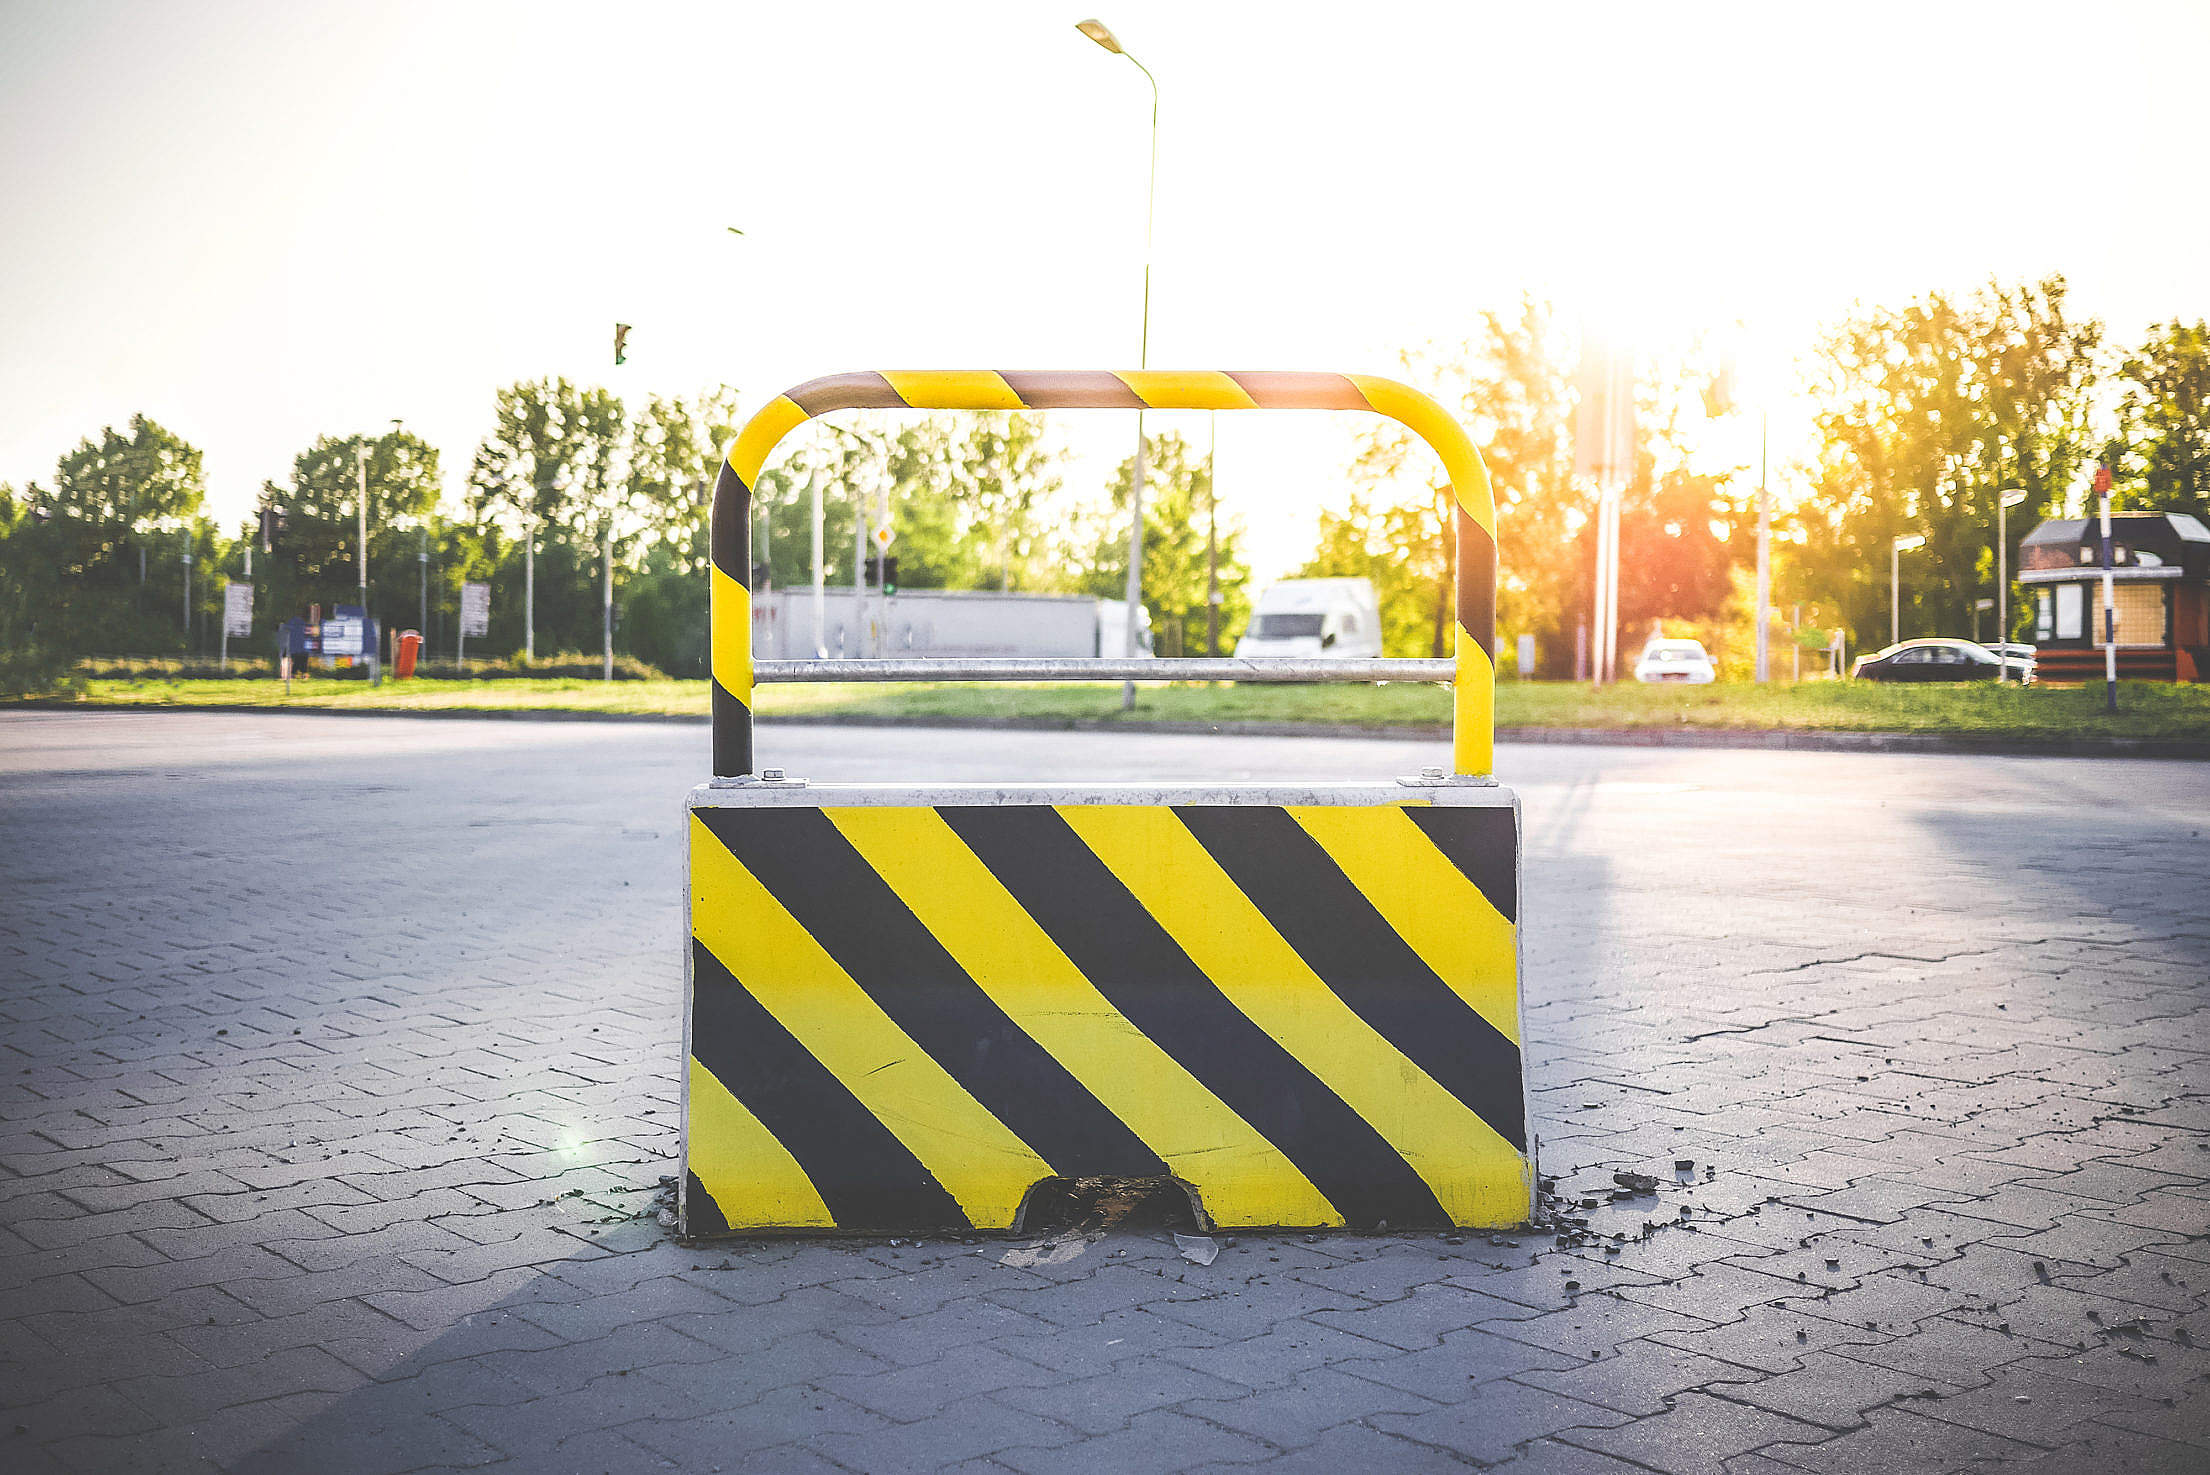 No Way Blocked Road Stop Free Stock Photo